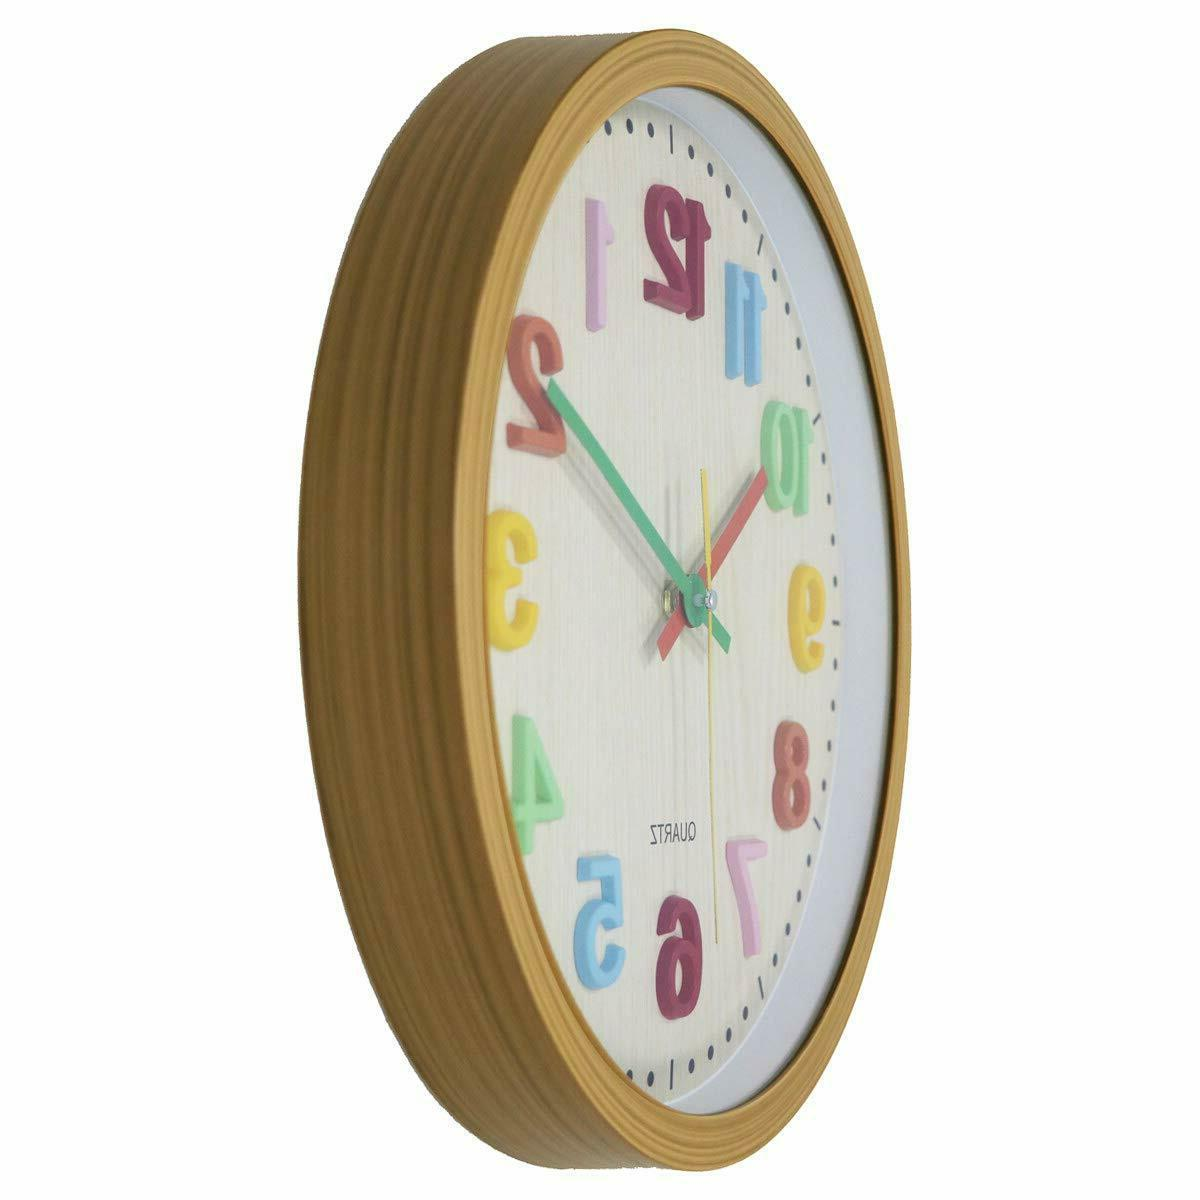 Kids Clock 3D Numbers Battery Operated Silent